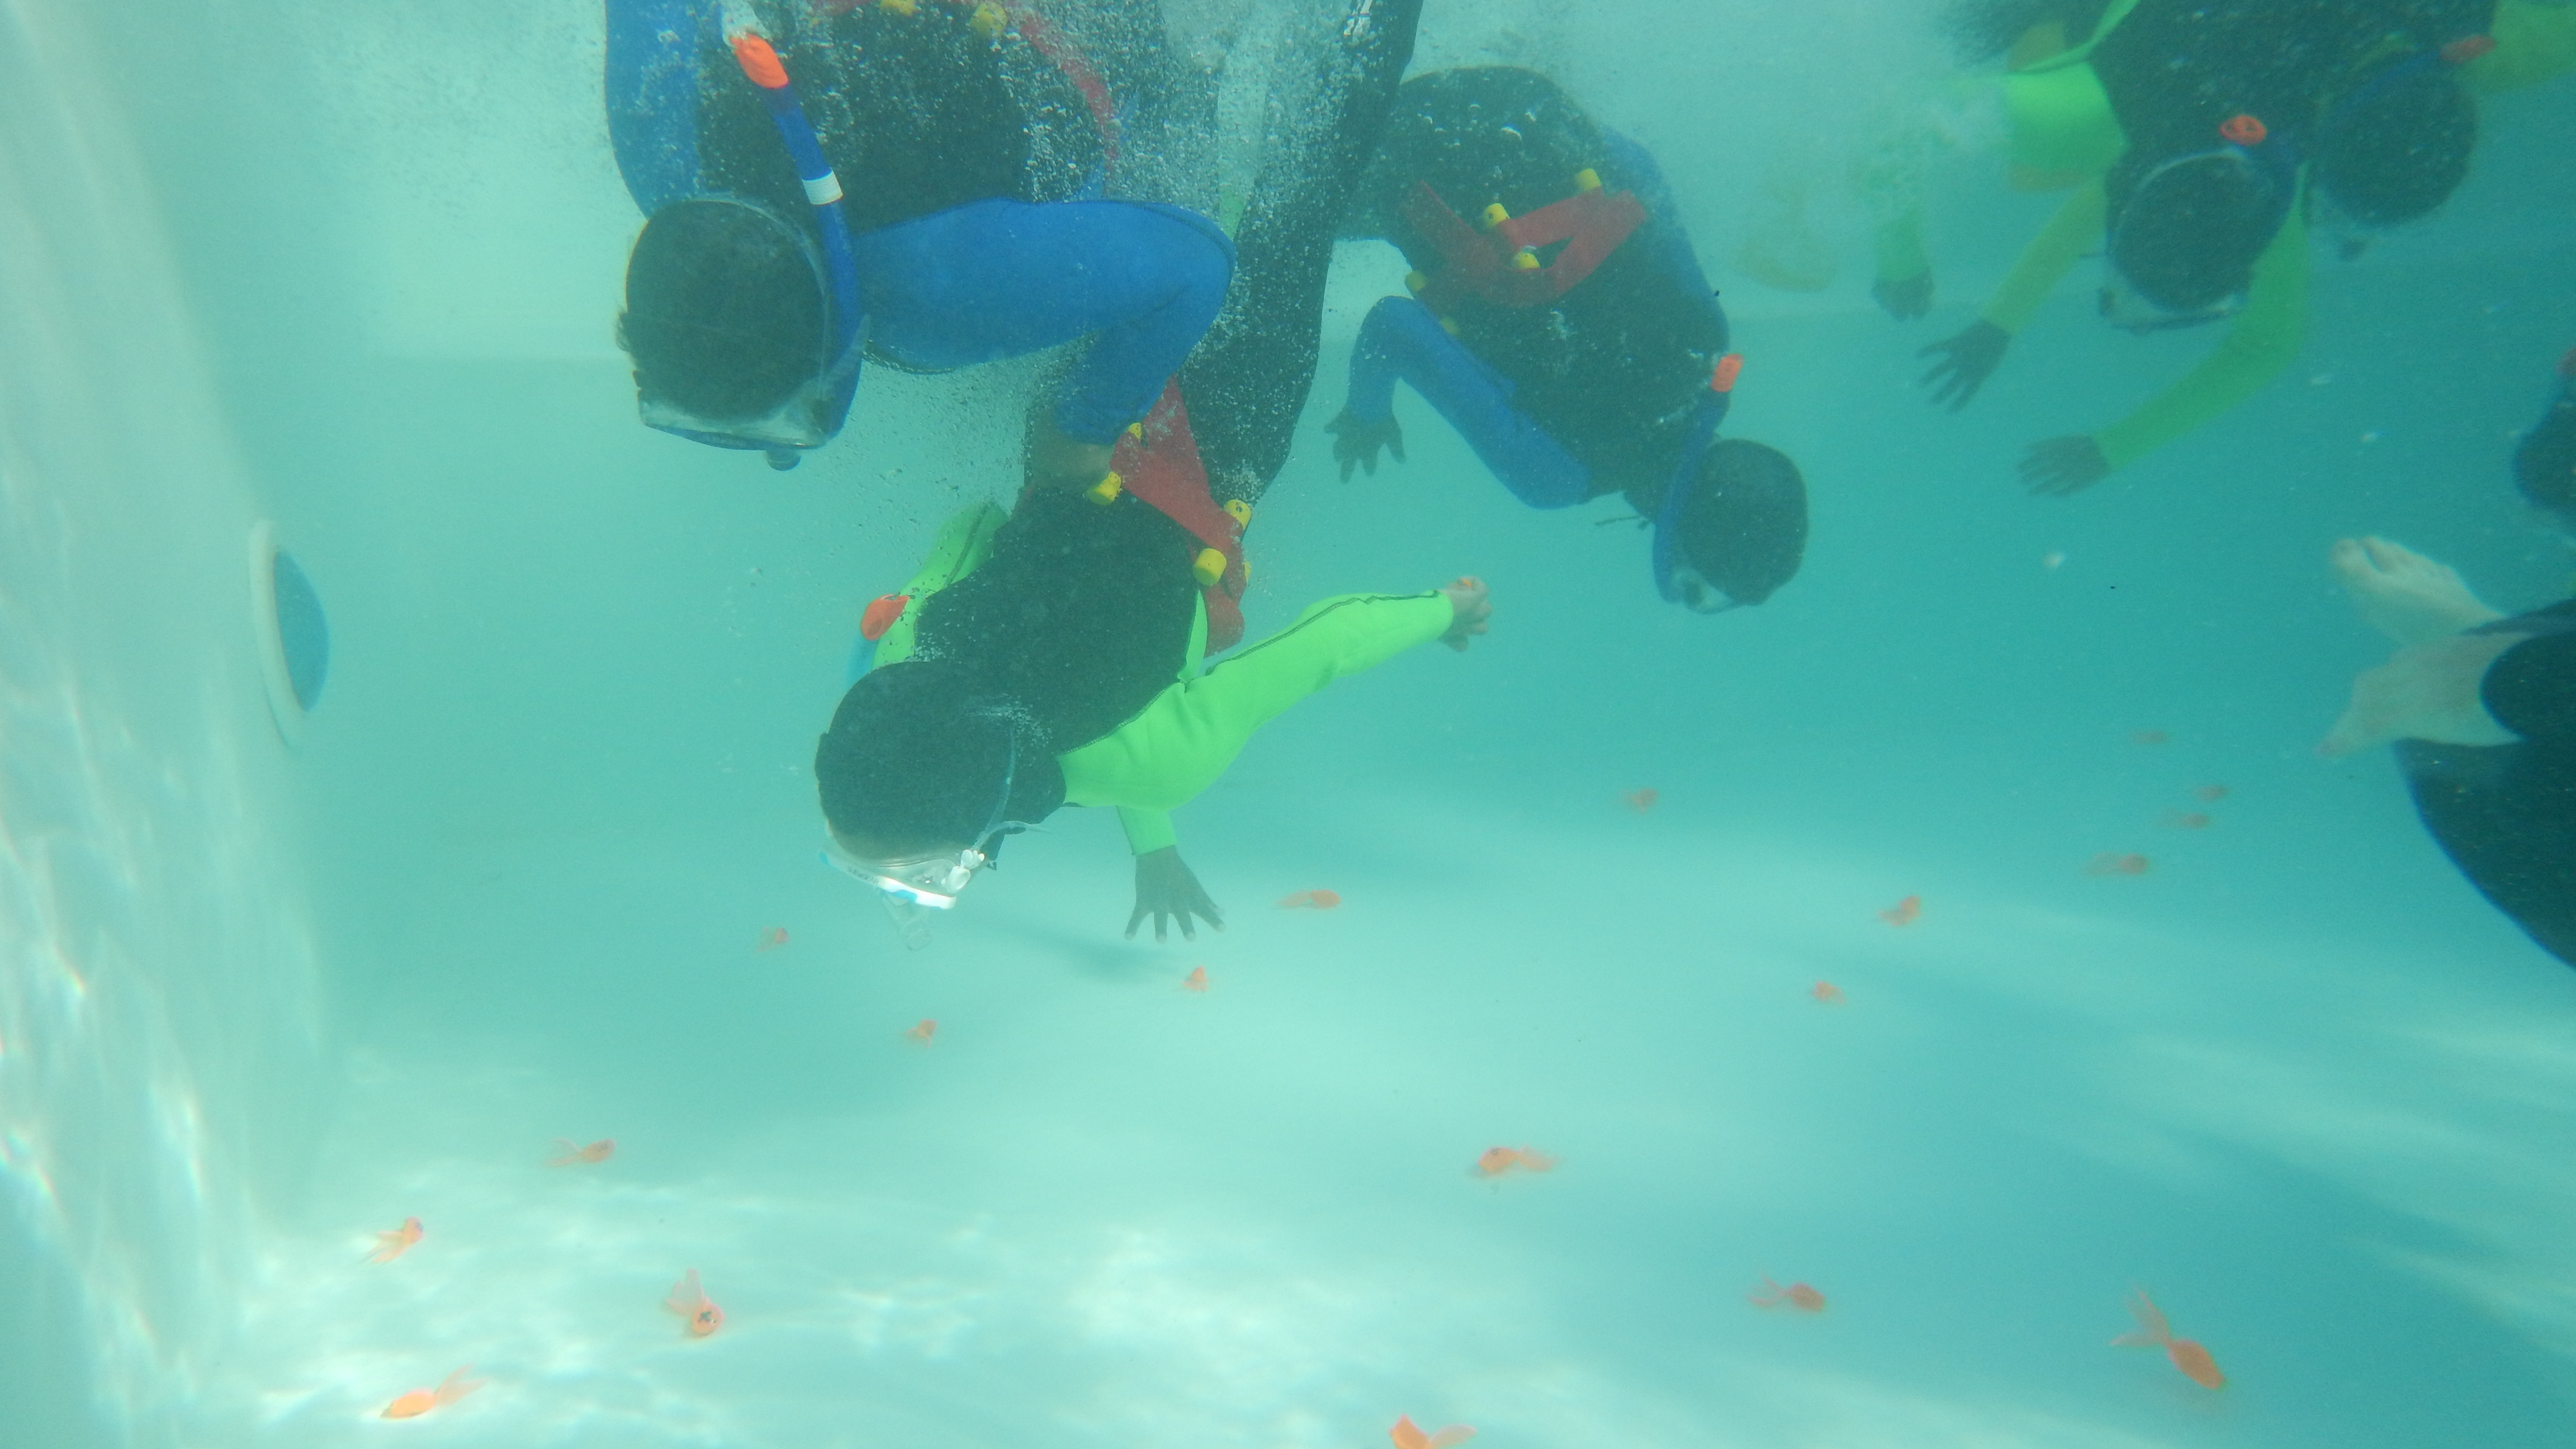 Trying to find Nemo